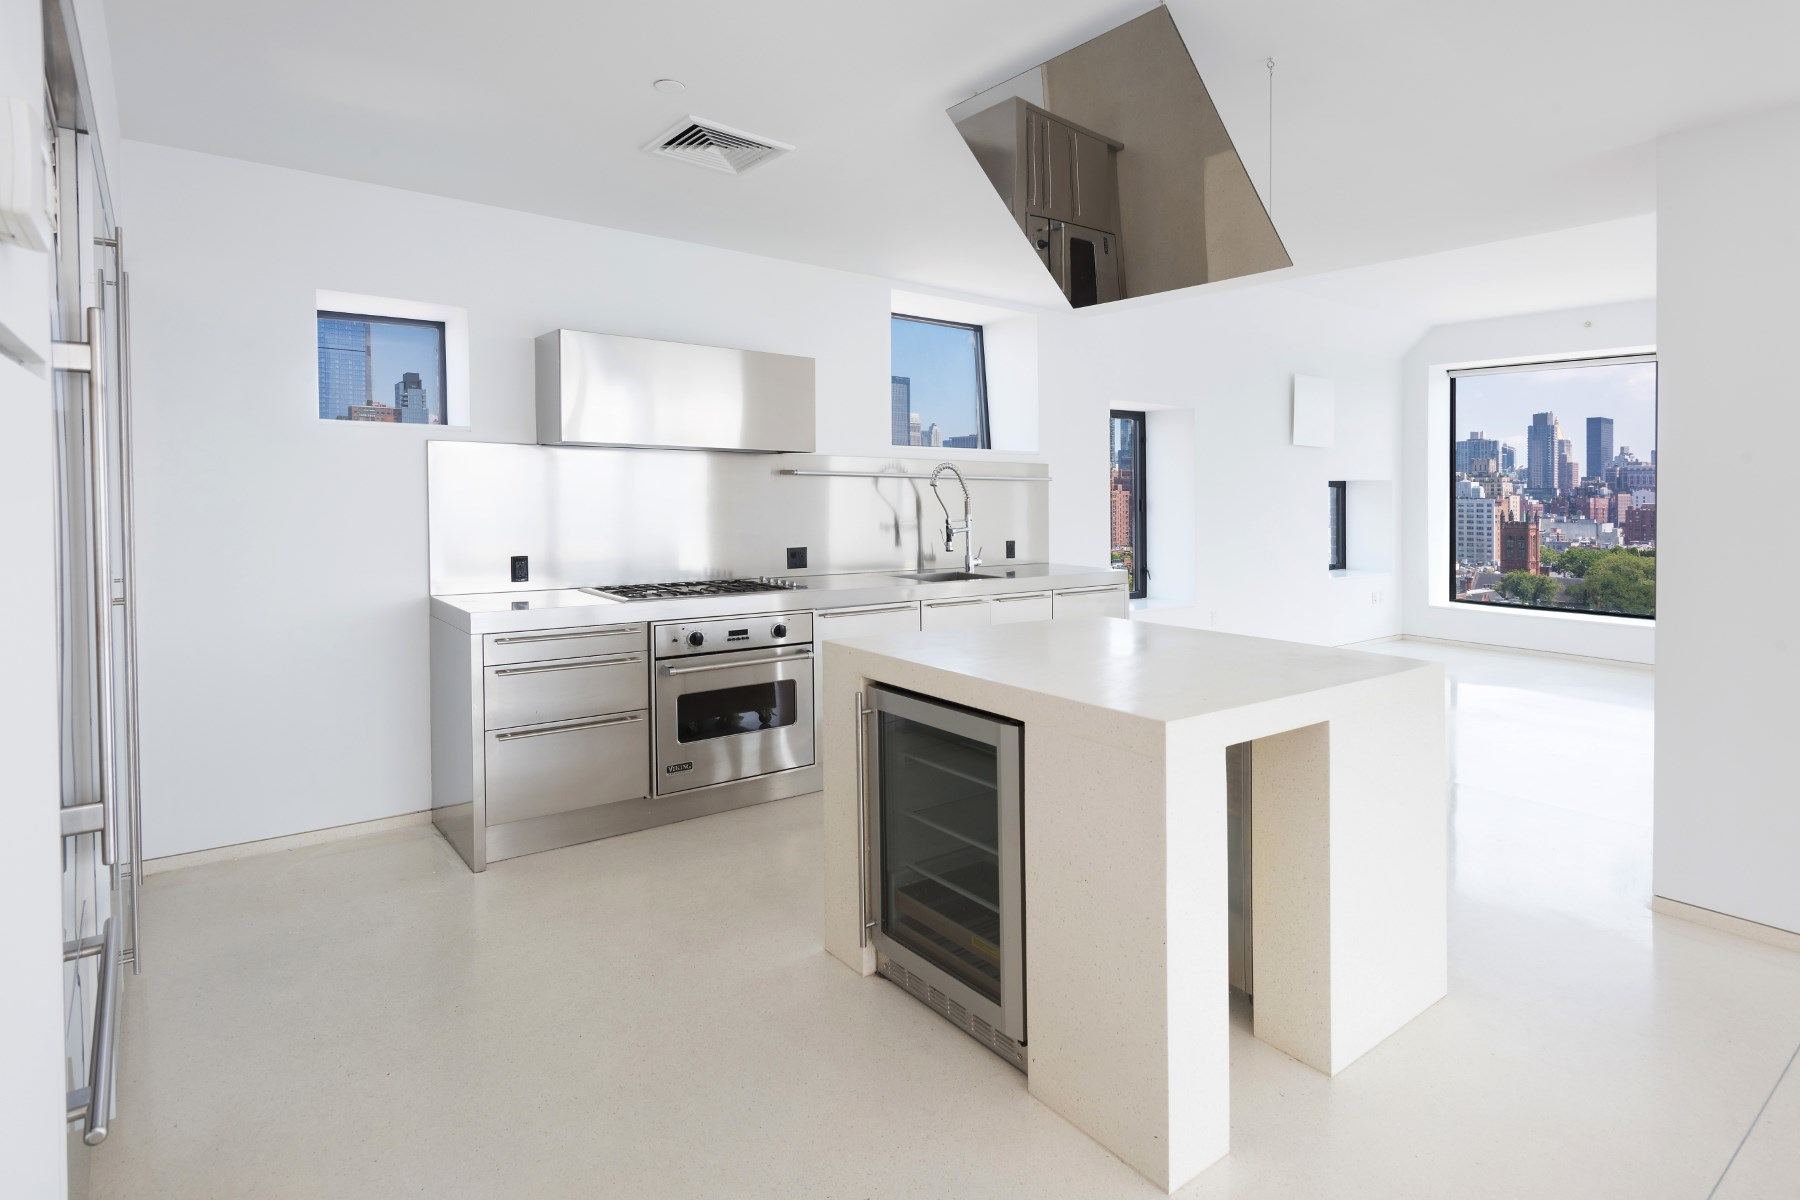 Additional photo for property listing at With Respect To Light & Views 100 Eleventh Avenue Apt 16C New York, New York 10011 United States